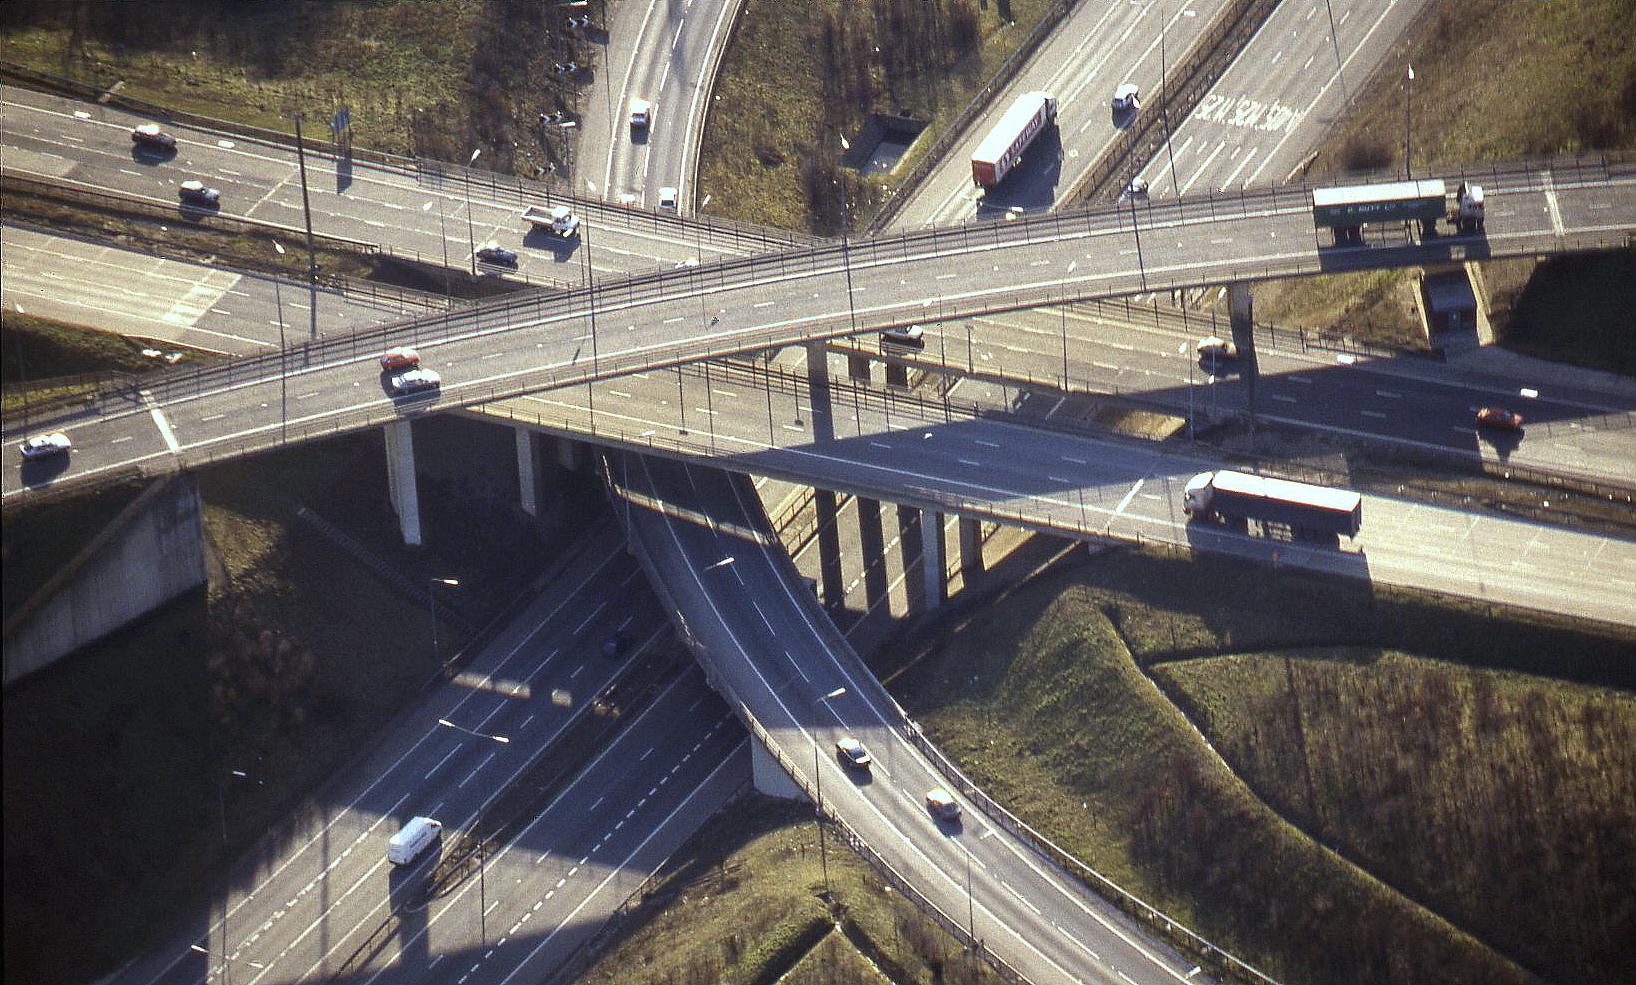 Junction of the M.1 & M.25 motorways, (Hertfordshire), circa mid 1990s